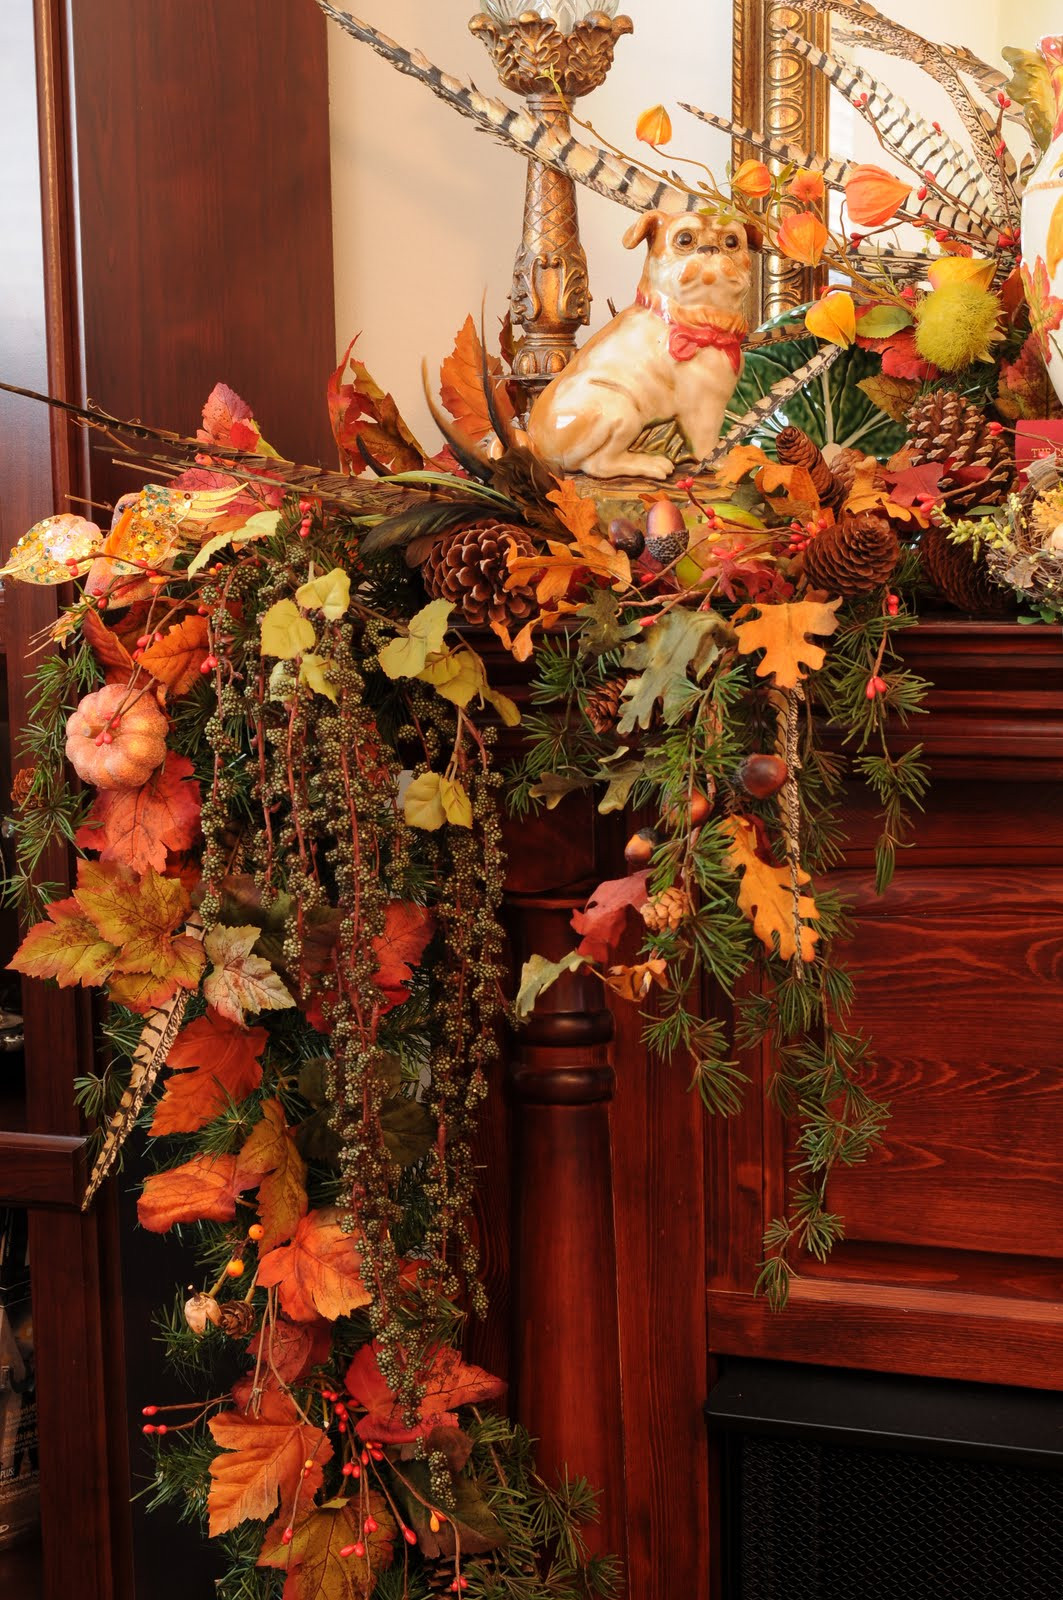 Fall Decor For Fireplace Mantel  Sweet Designs Fall Fireplace Mantel decorating